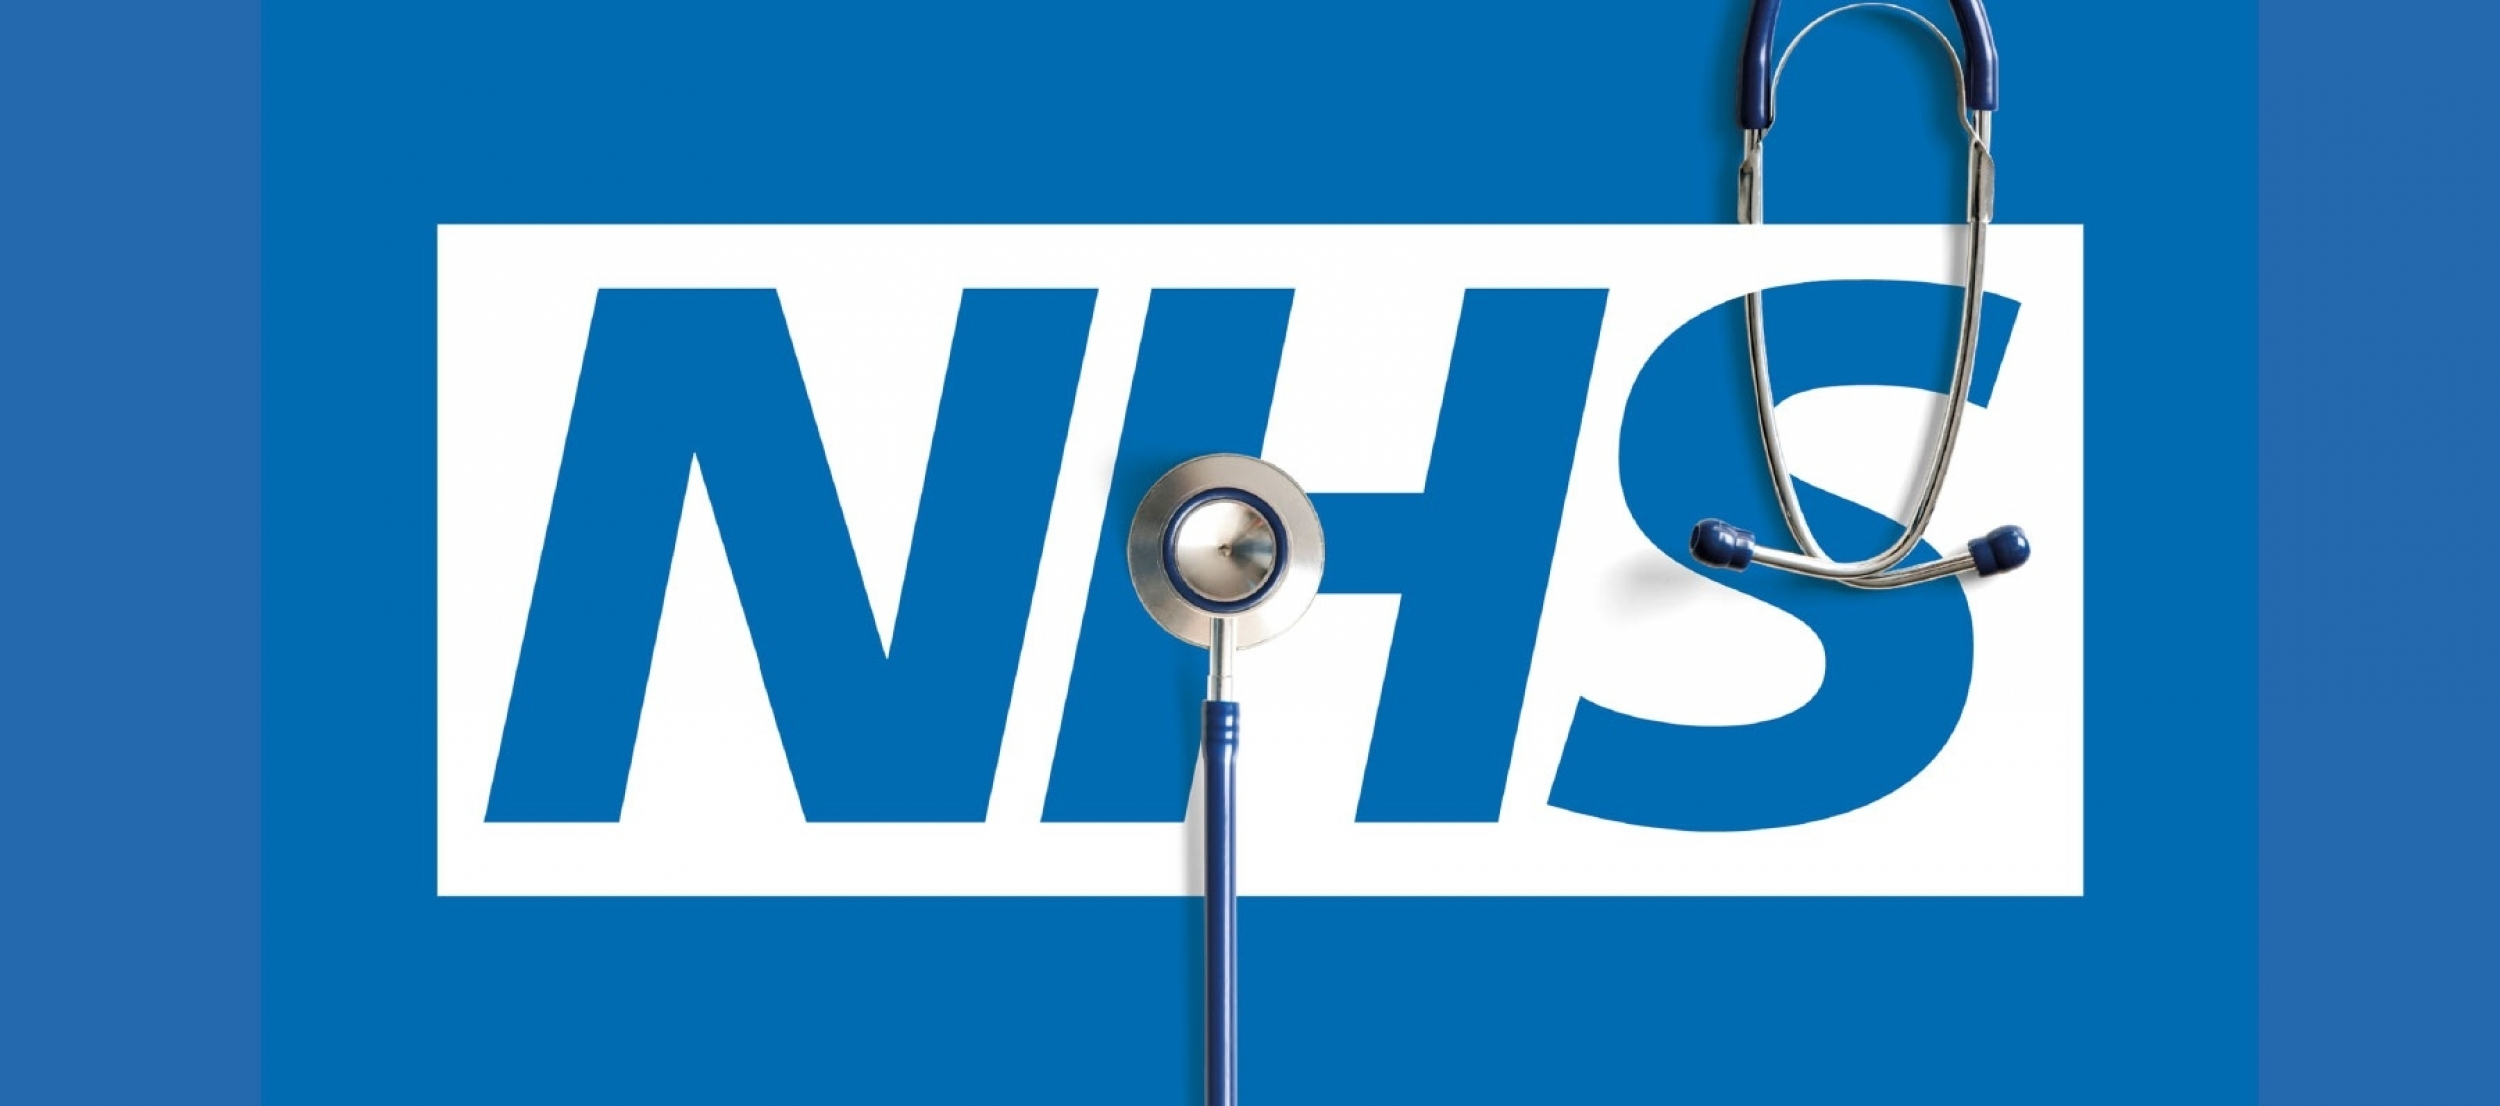 NHS - logo with stethoscope